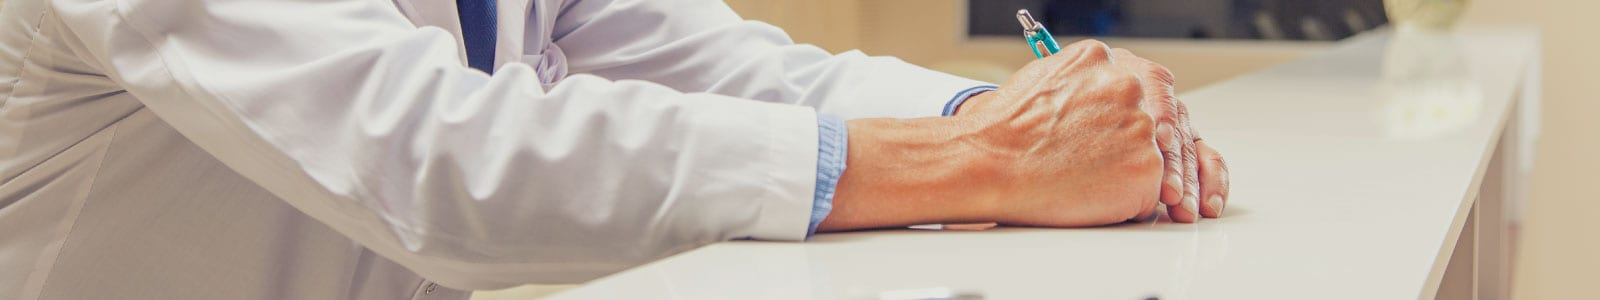 claims related to medical malpractice